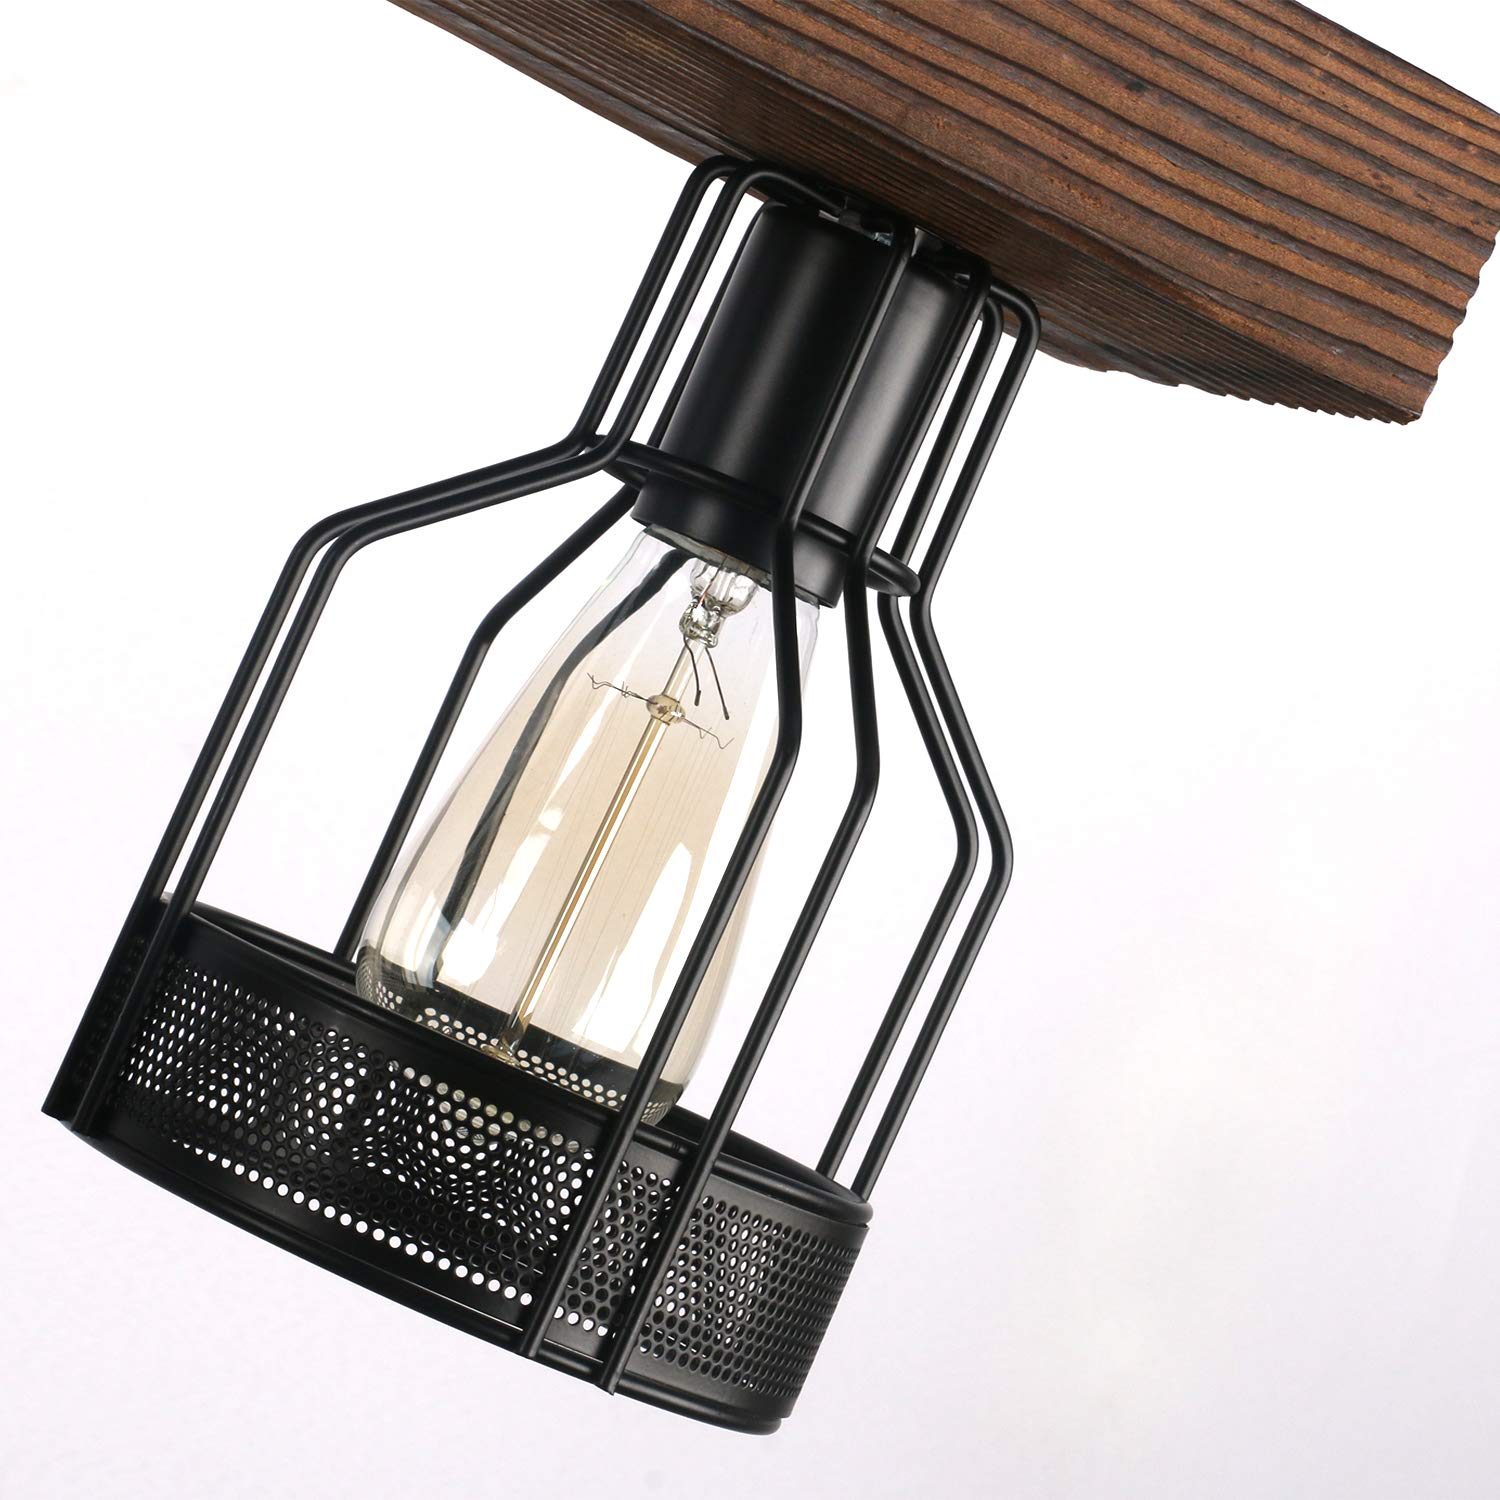 Unitary Brand Vintage Black Metal and Wood Body Cage Shade Kitchen Island Lighting with 4 E26 Bulb Sockets 240W Painted Finish by Unitary (Image #6)